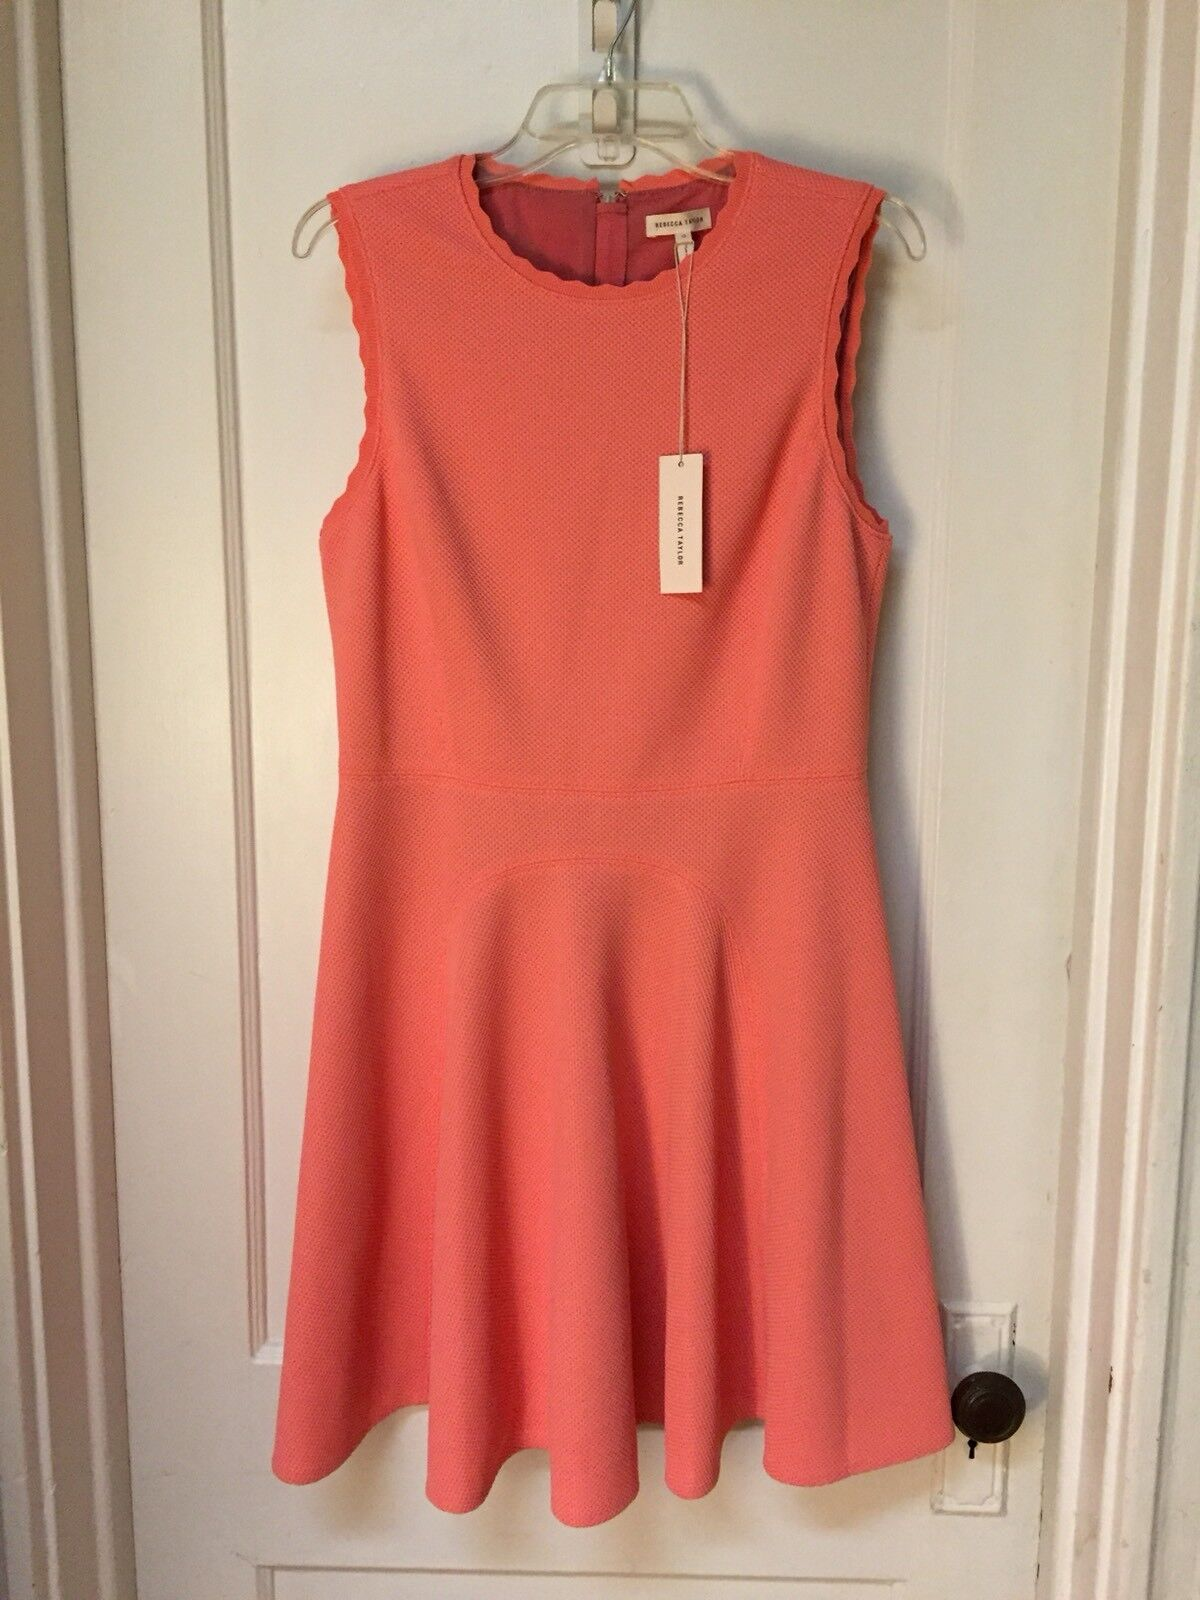 REBECCA TAYLOR SLEEVELESS FIT AND FLARE DRESS NEW Größe 12